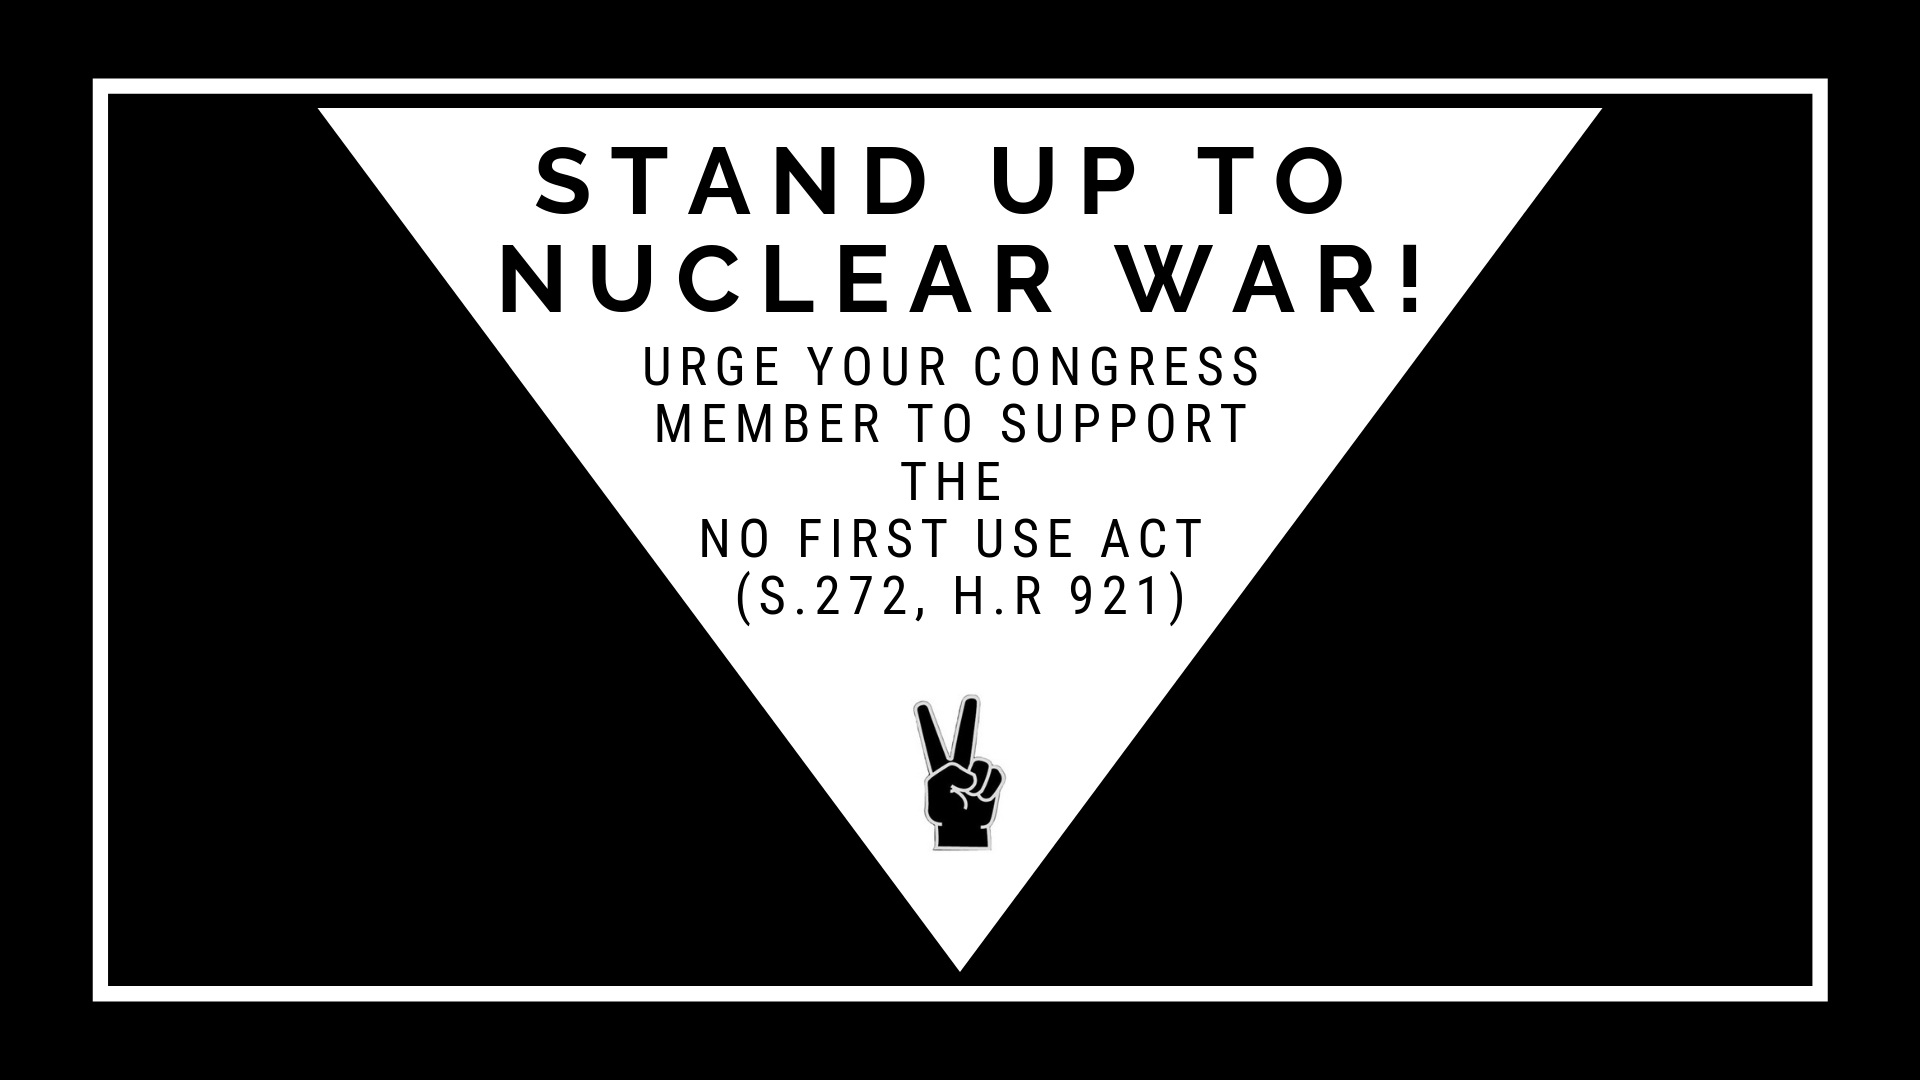 Support No First Use, by calling your member of congress. We believe the US should never start a nuclear war, help us make it policy.  Washington Physicians for Social Responsibility